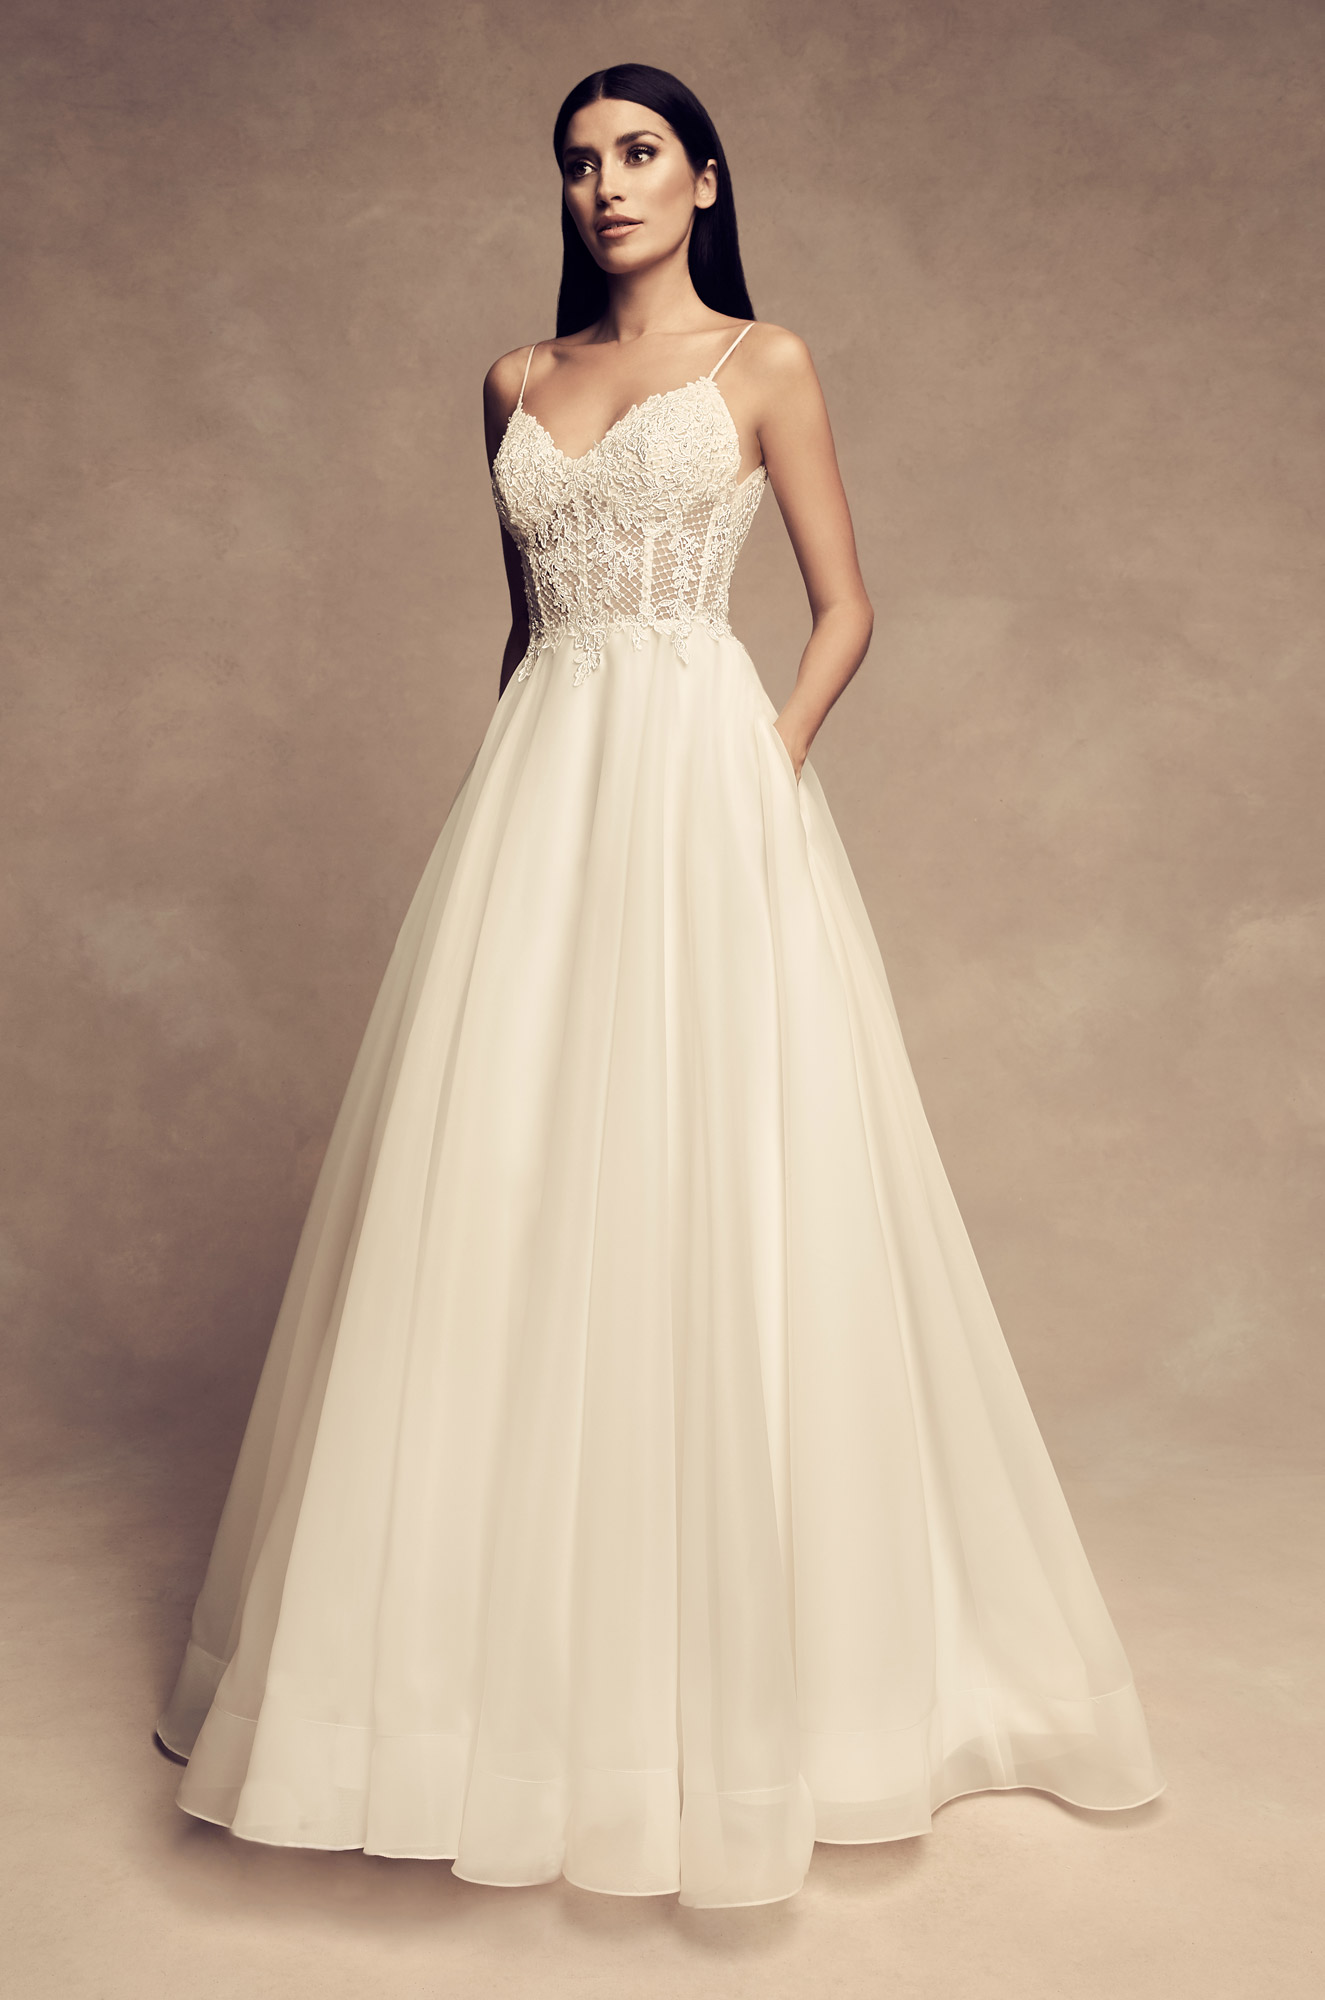 Graceful Ball Gown Wedding Dress – Style #4802 | Paloma Blanca